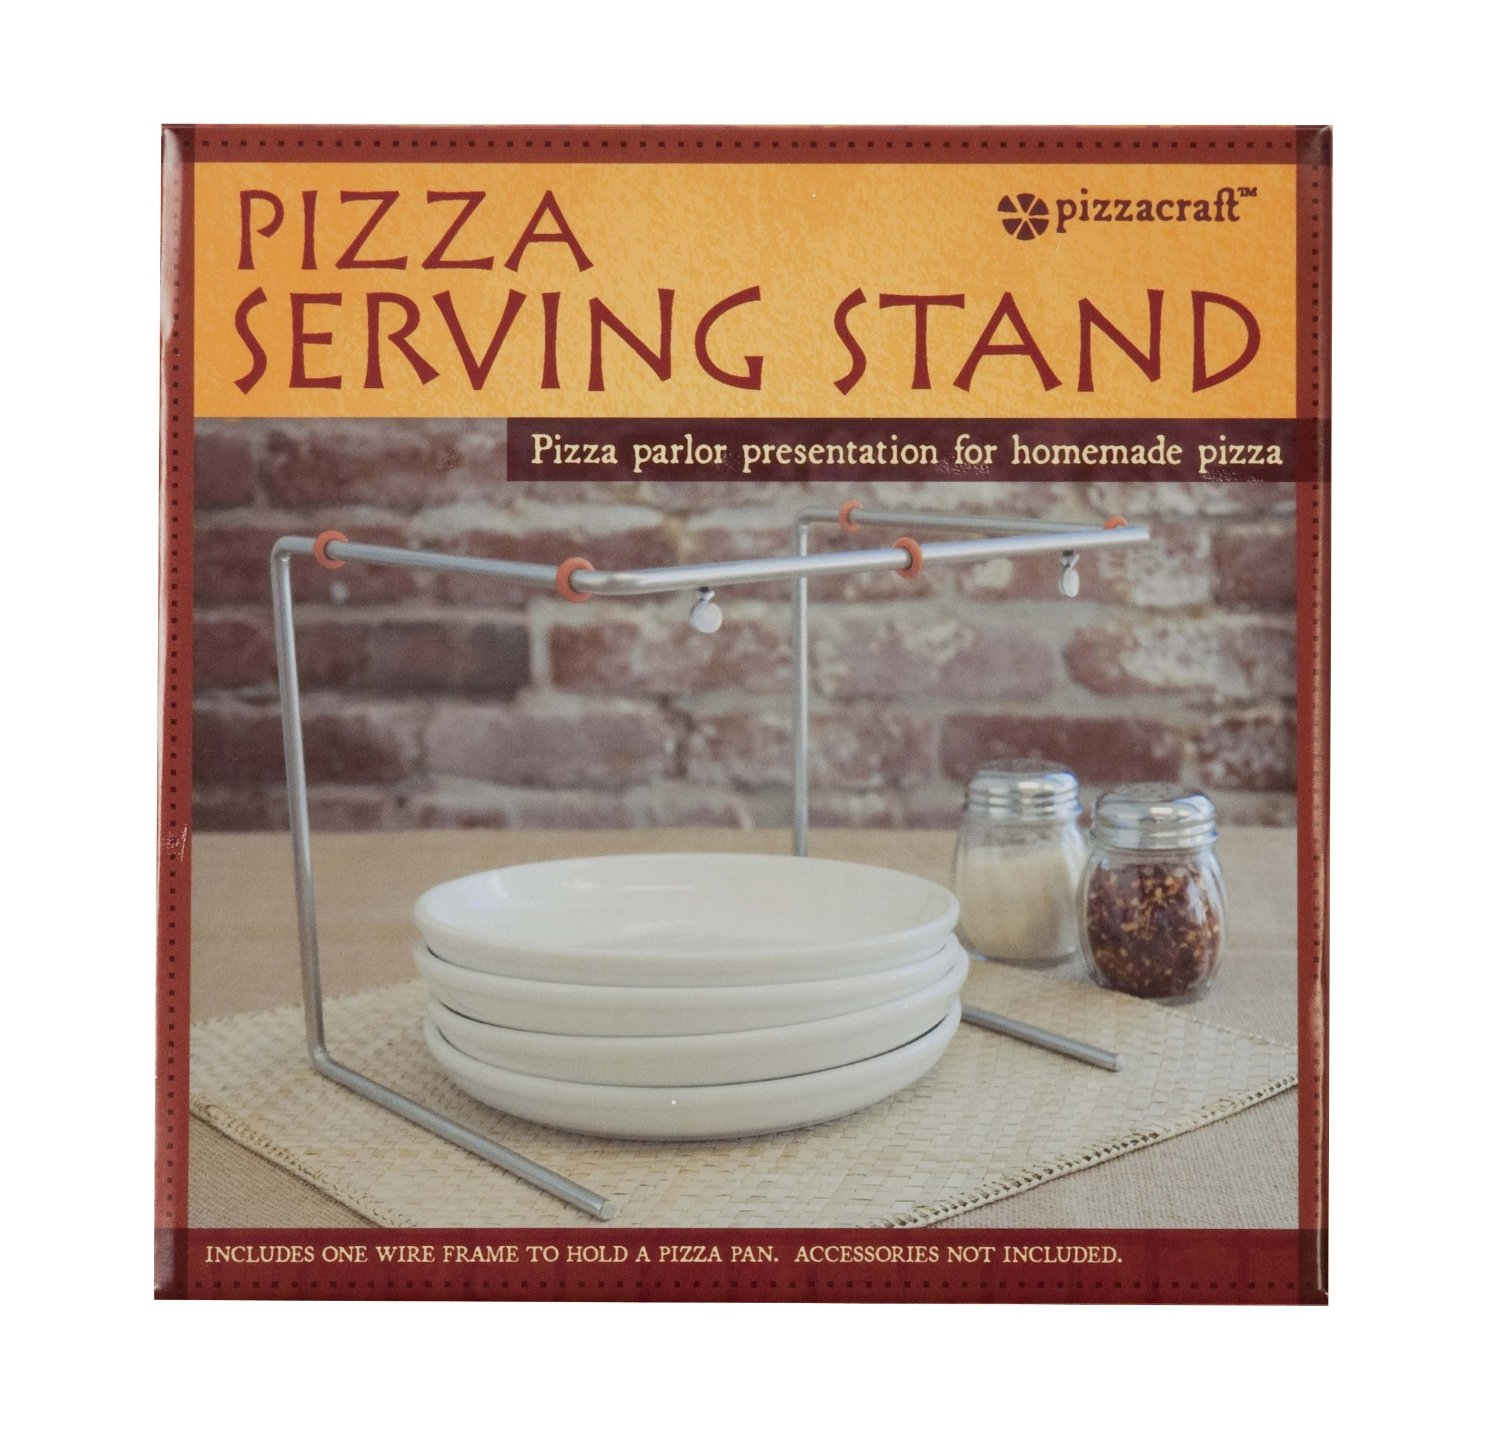 Pizza serving stand